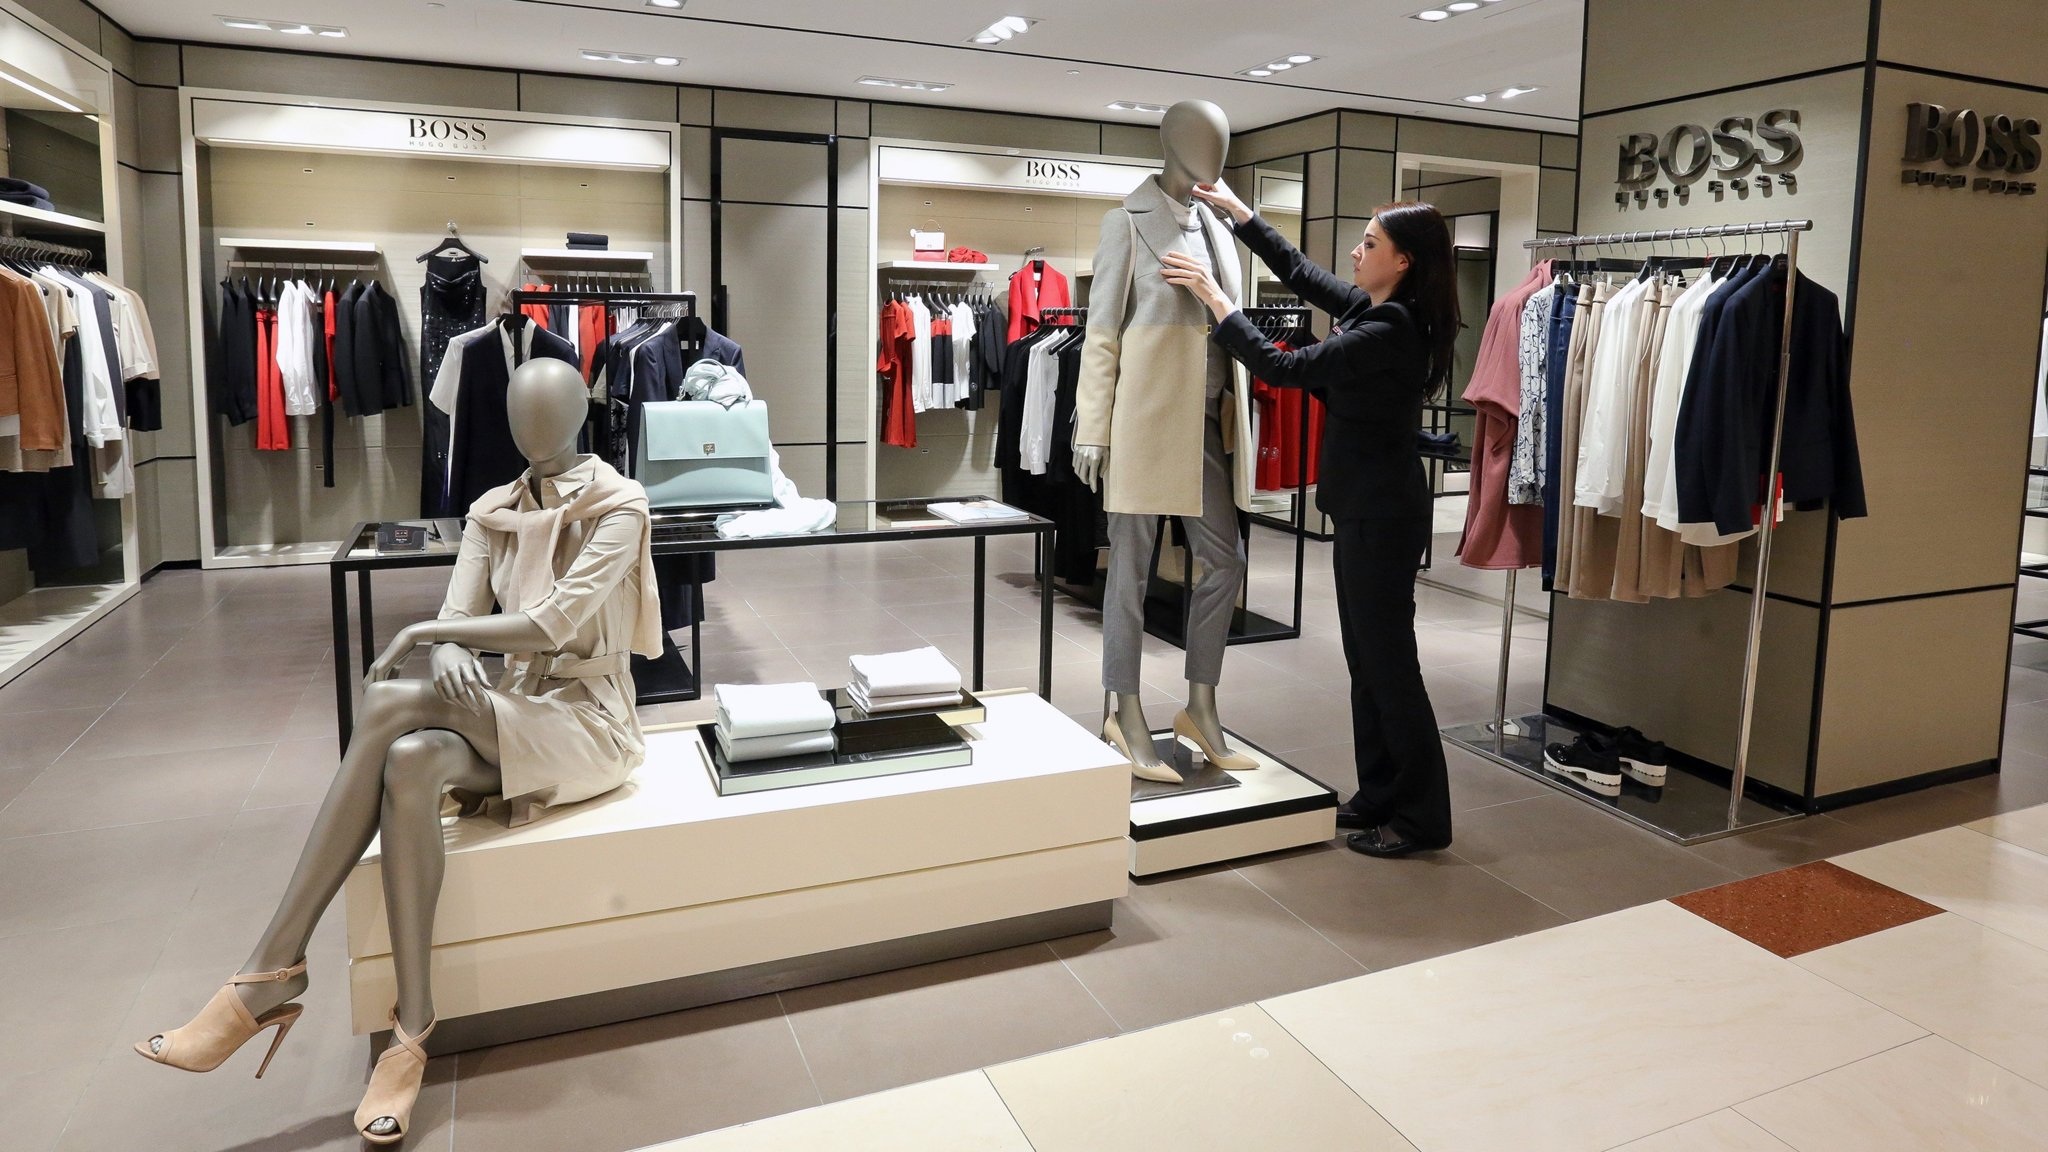 4b3c10e3c Hugo Boss beats expectations driven by Asia and online sales   Financial  Times